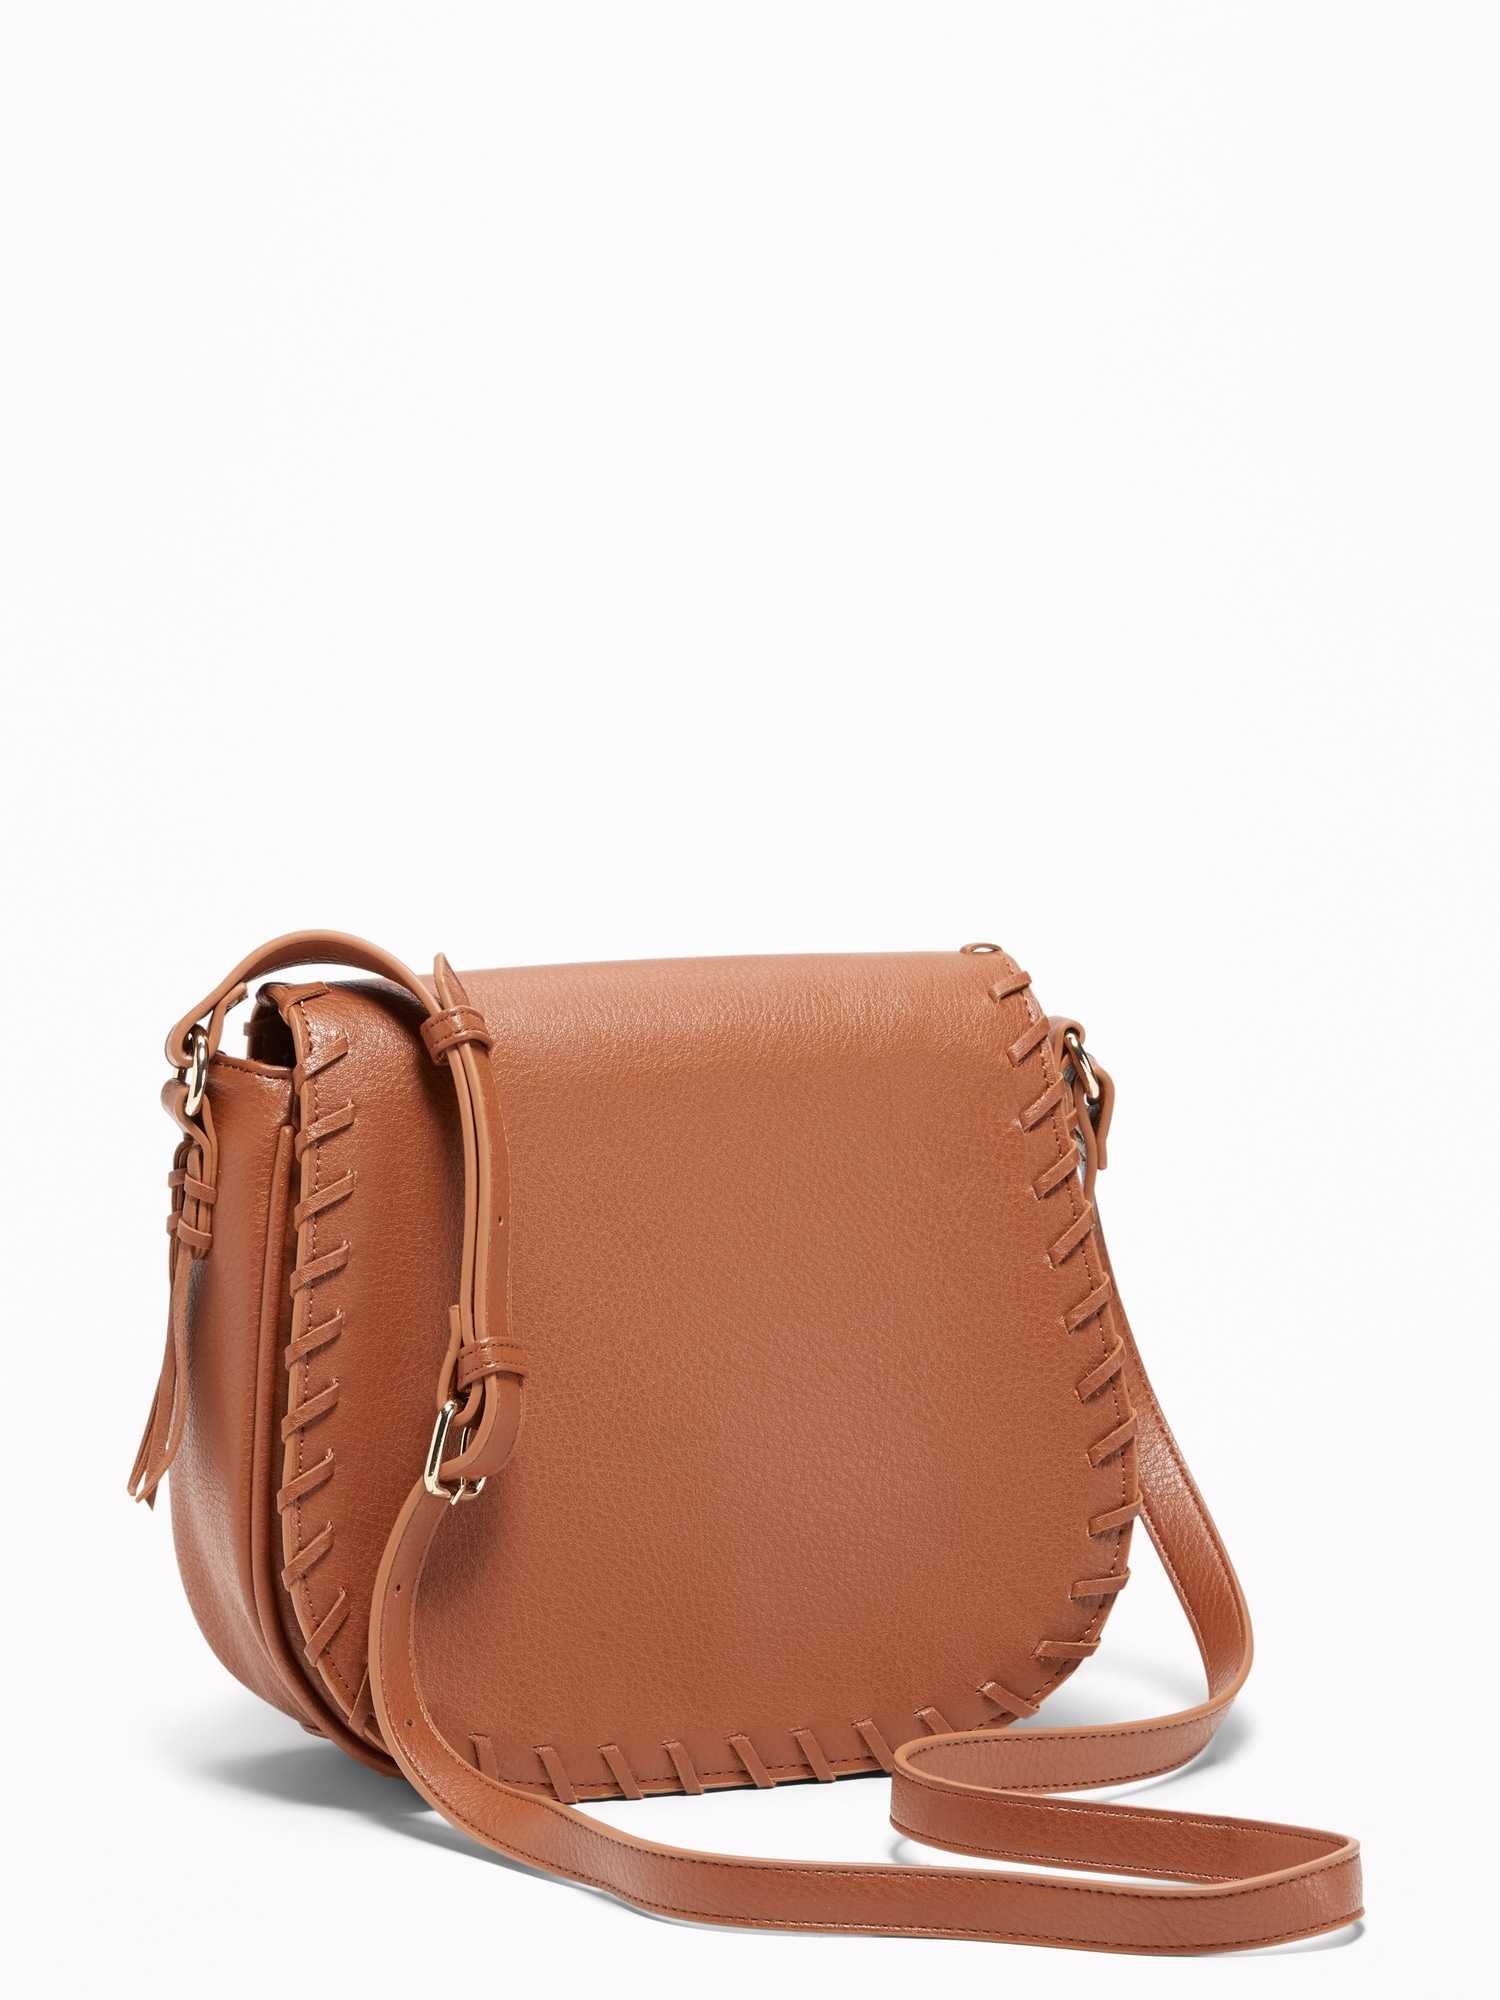 Whip-Stitch Crossbody Saddle Bag for Women  4913cd6a8f9d8